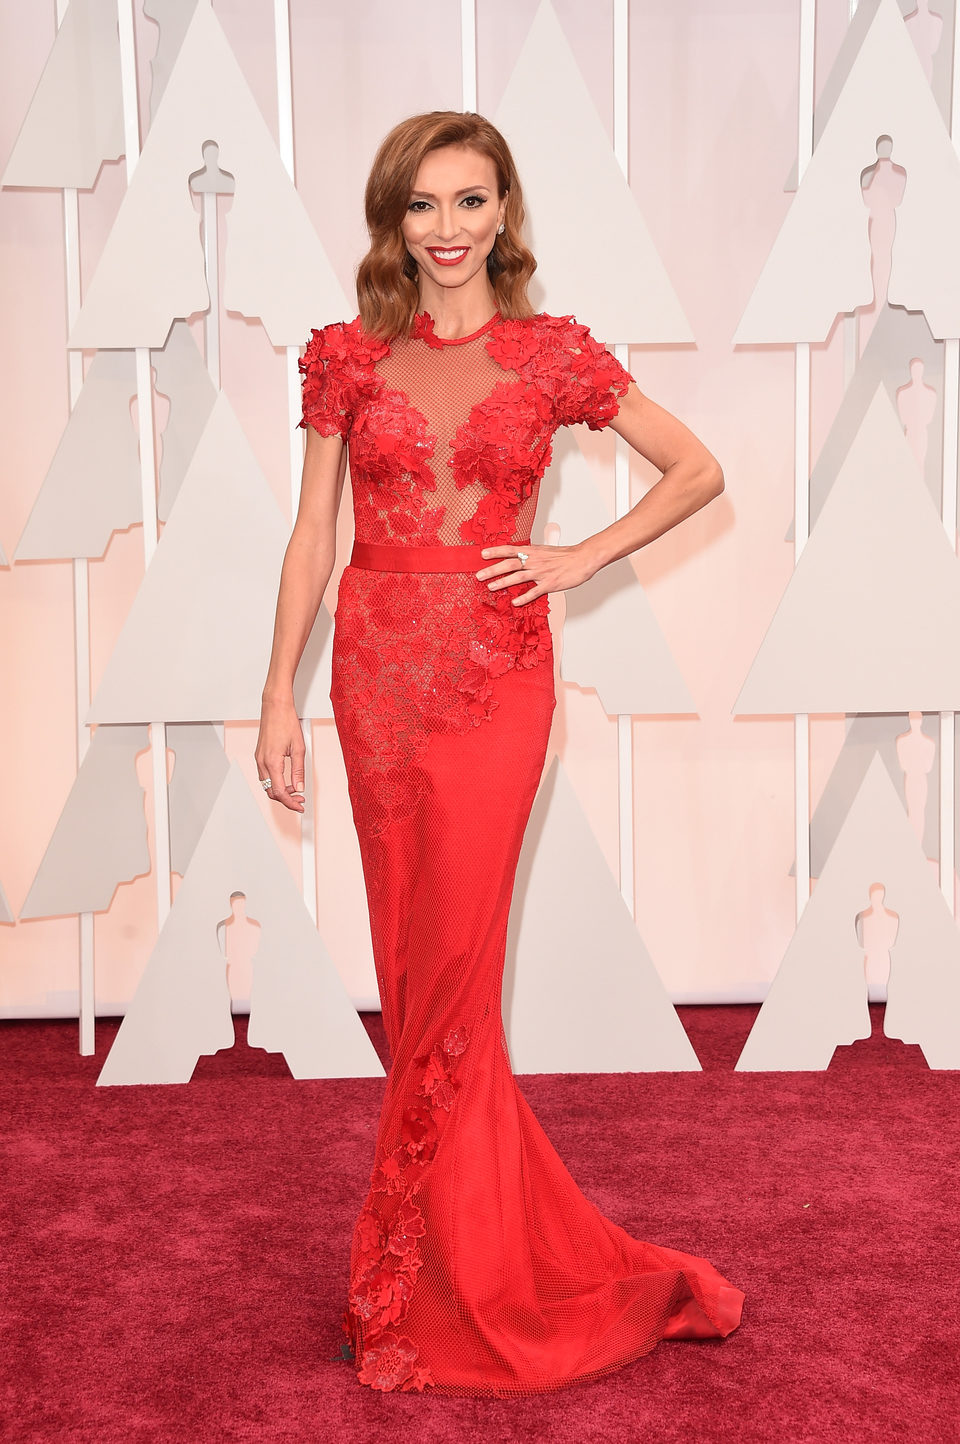 Giuliana Rancic poses at the Oscars 2015 red carpet